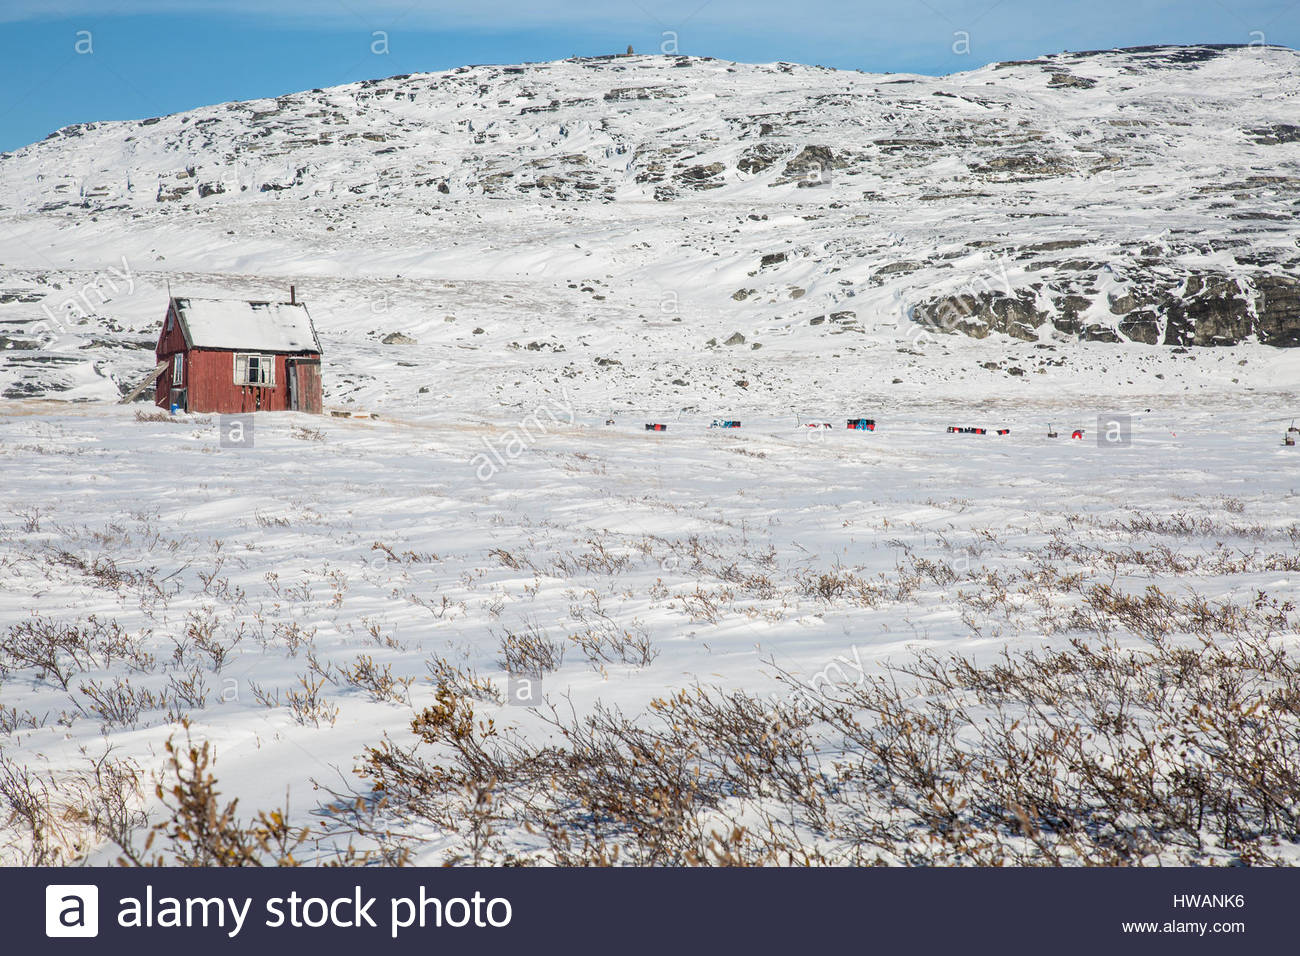 lone red greenlandic home snowy landscape Stock Photo